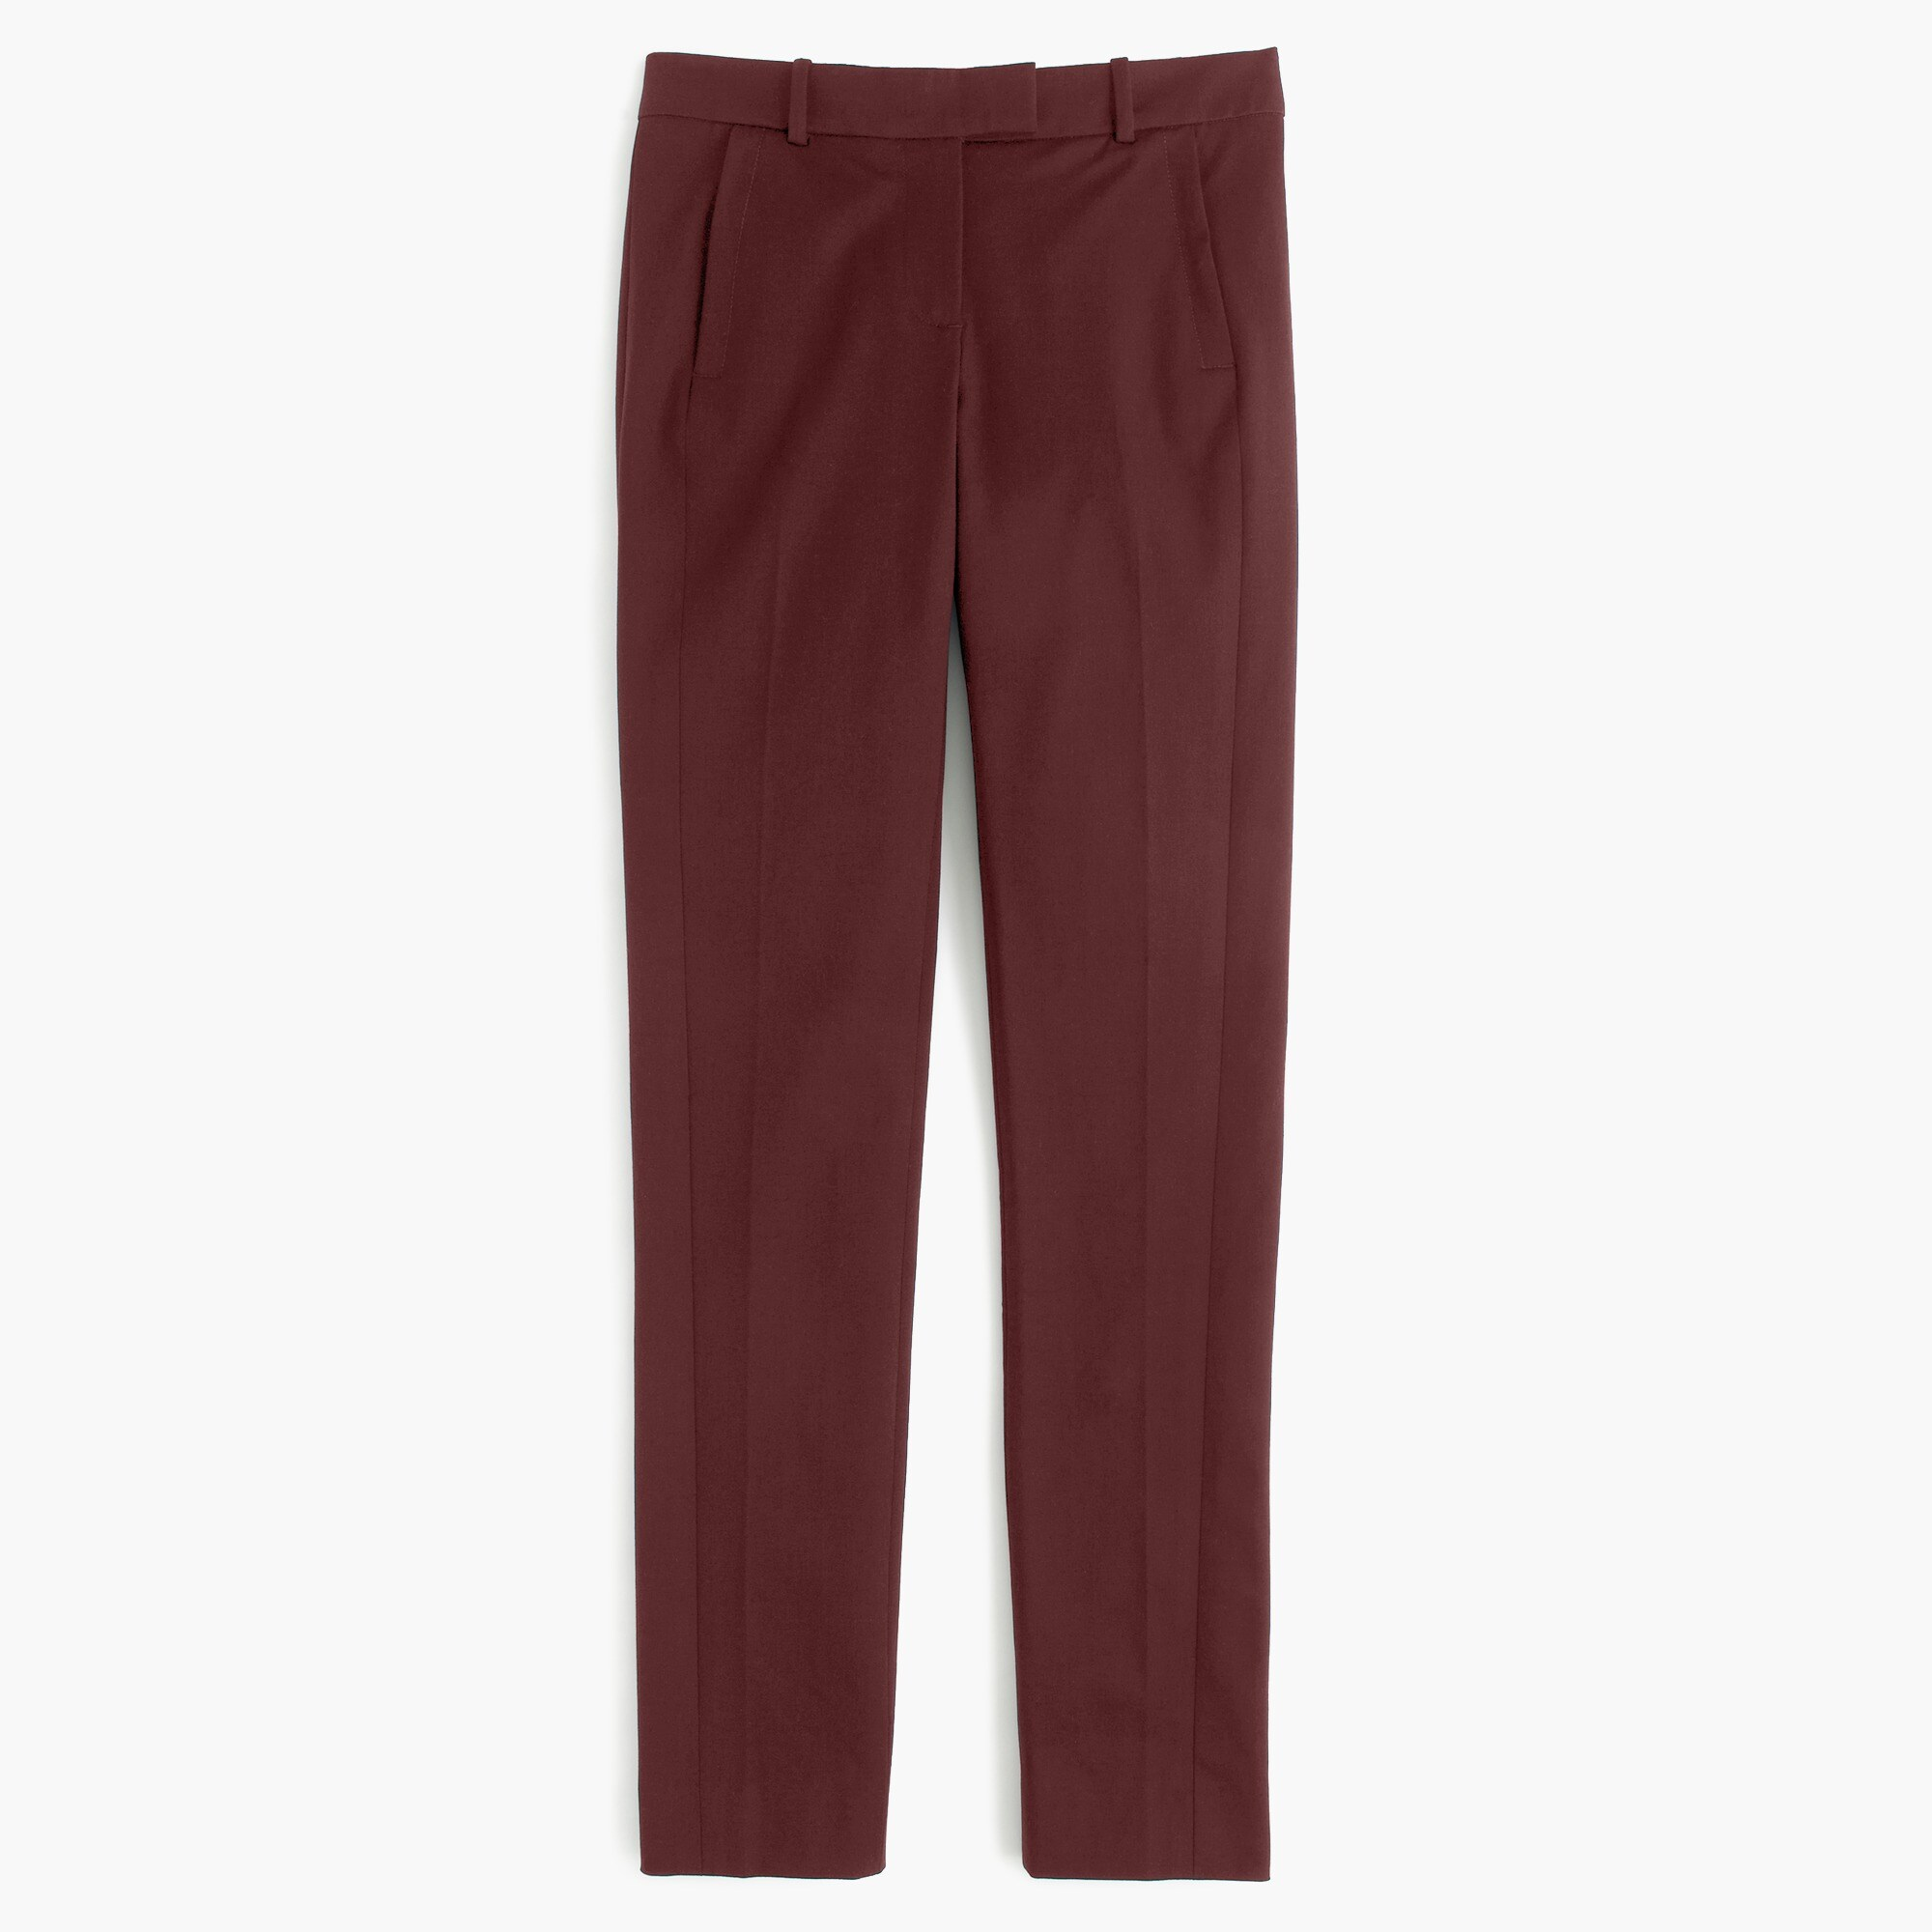 women's tall maddie pant in two-way stretch cotton - women's pants